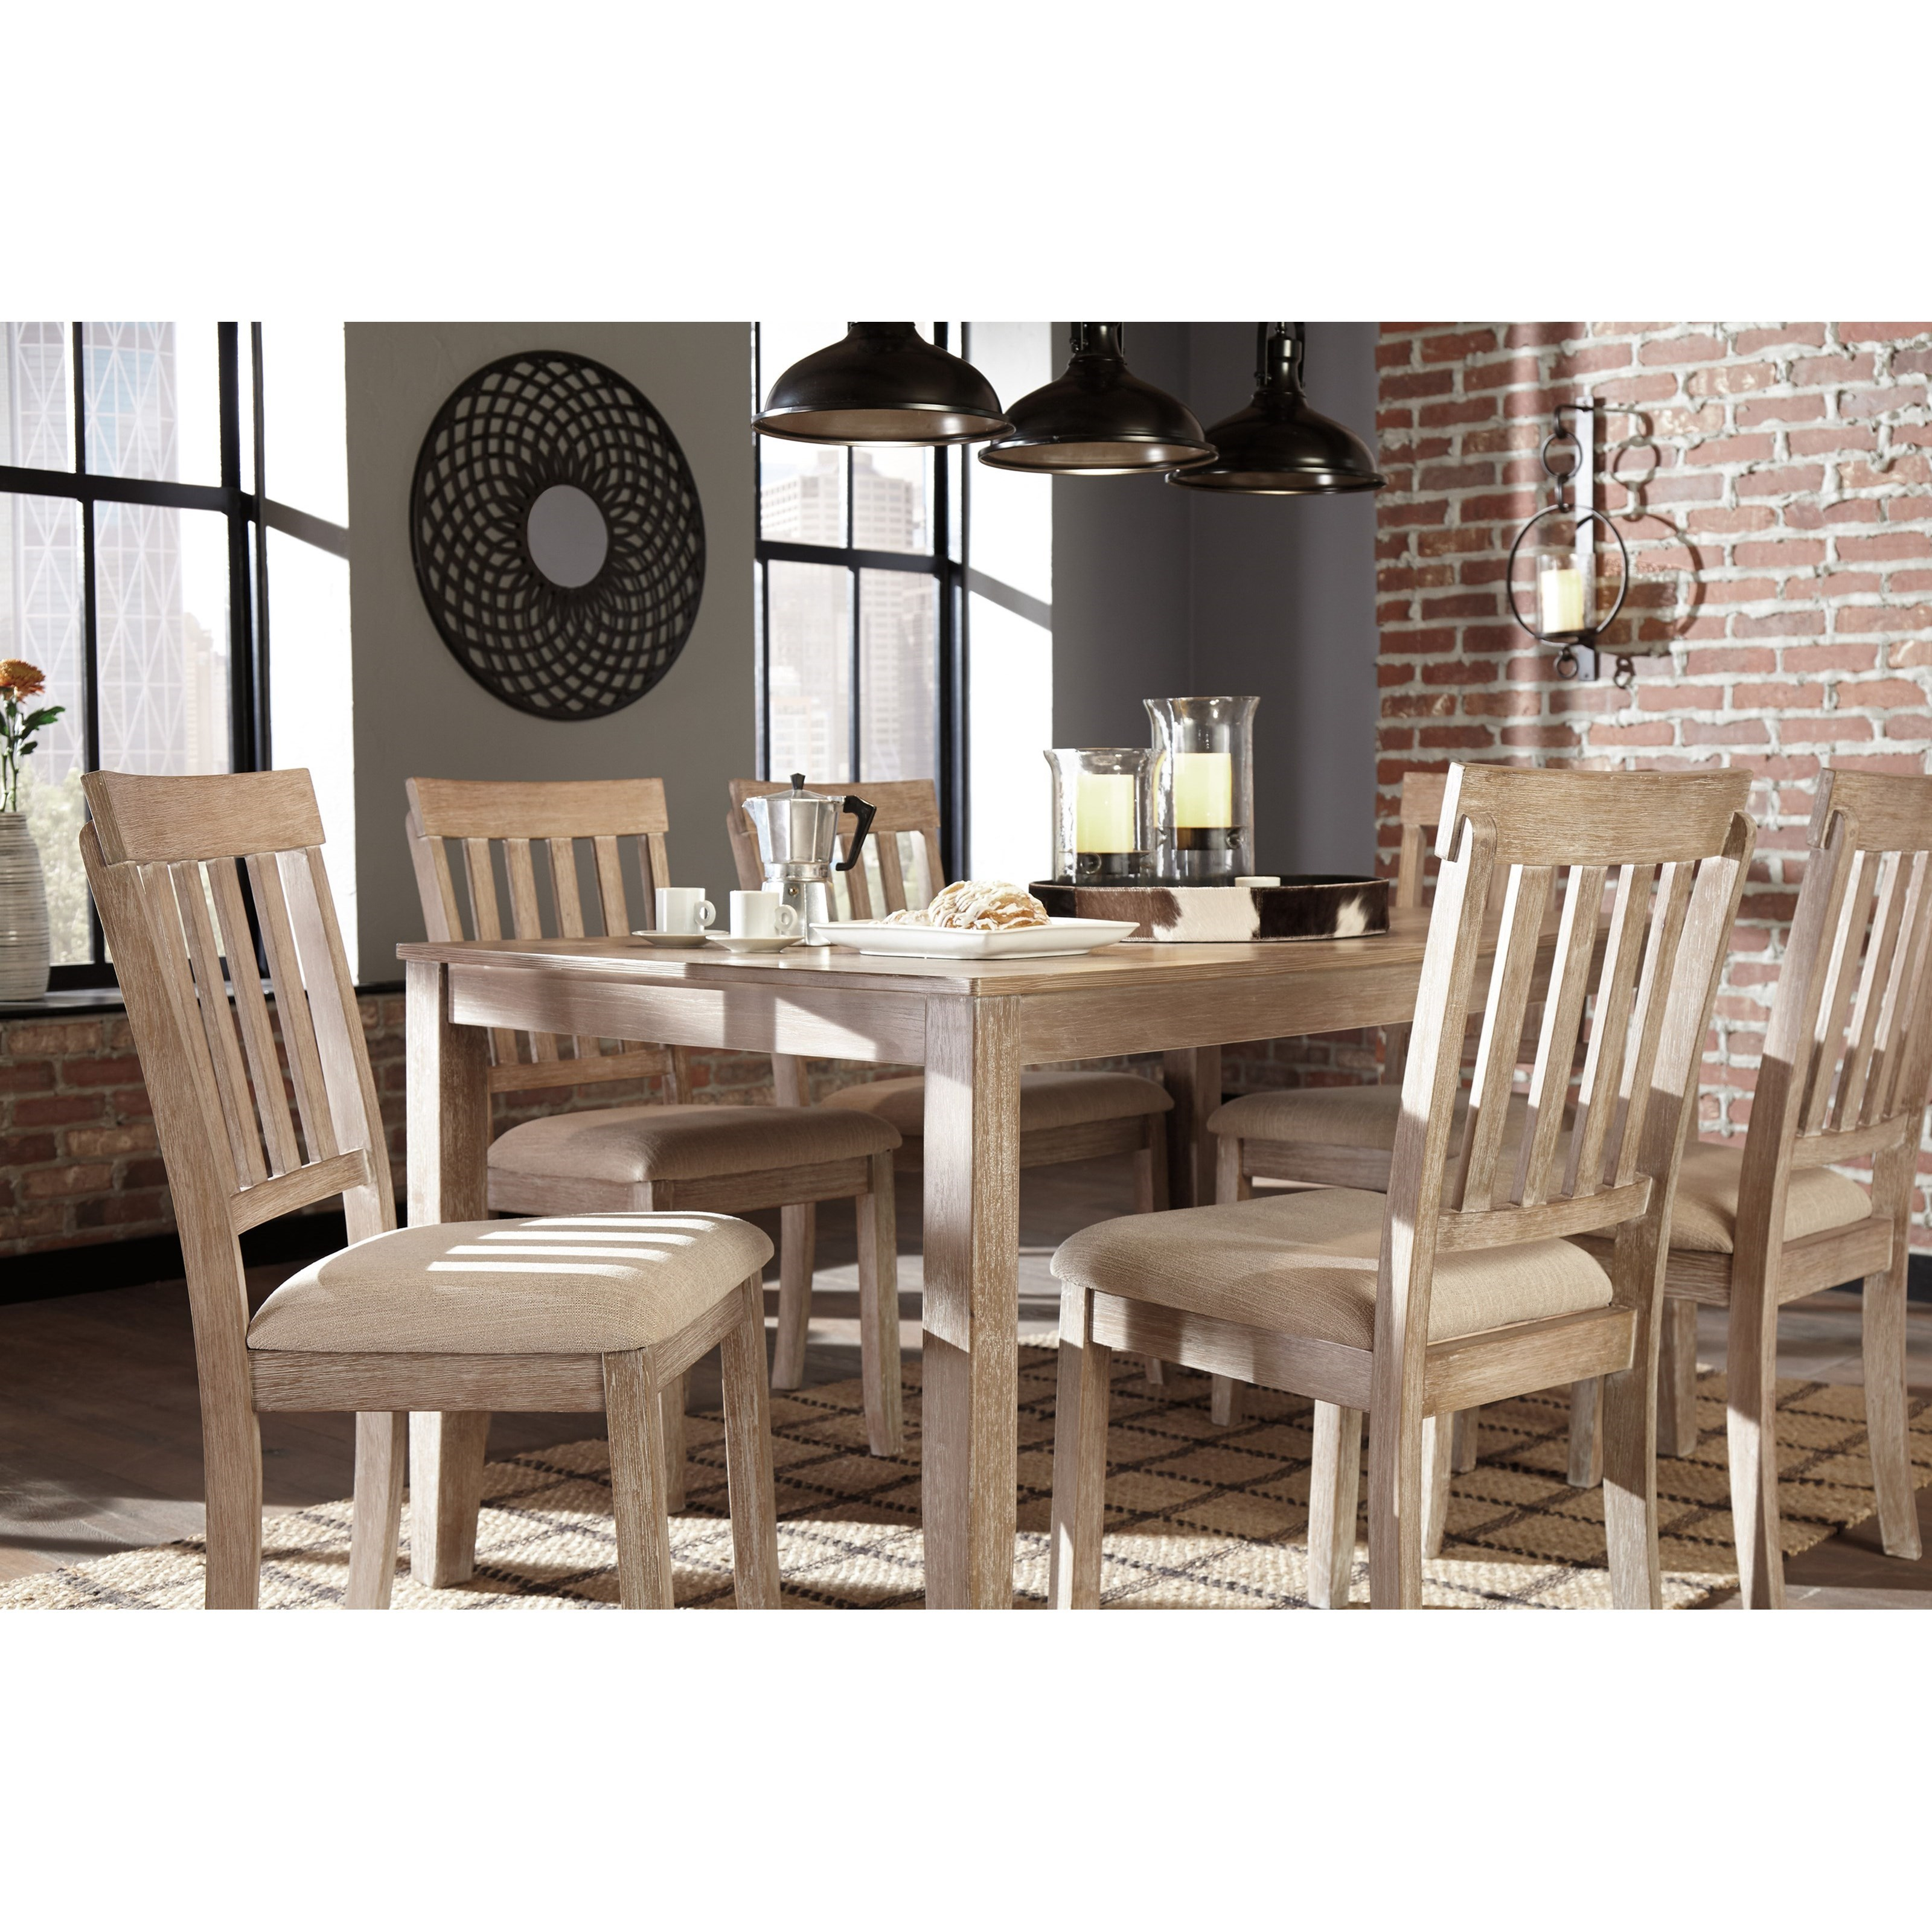 Benchcraft Mattilone D484-425 Casual Dining Room Table Set